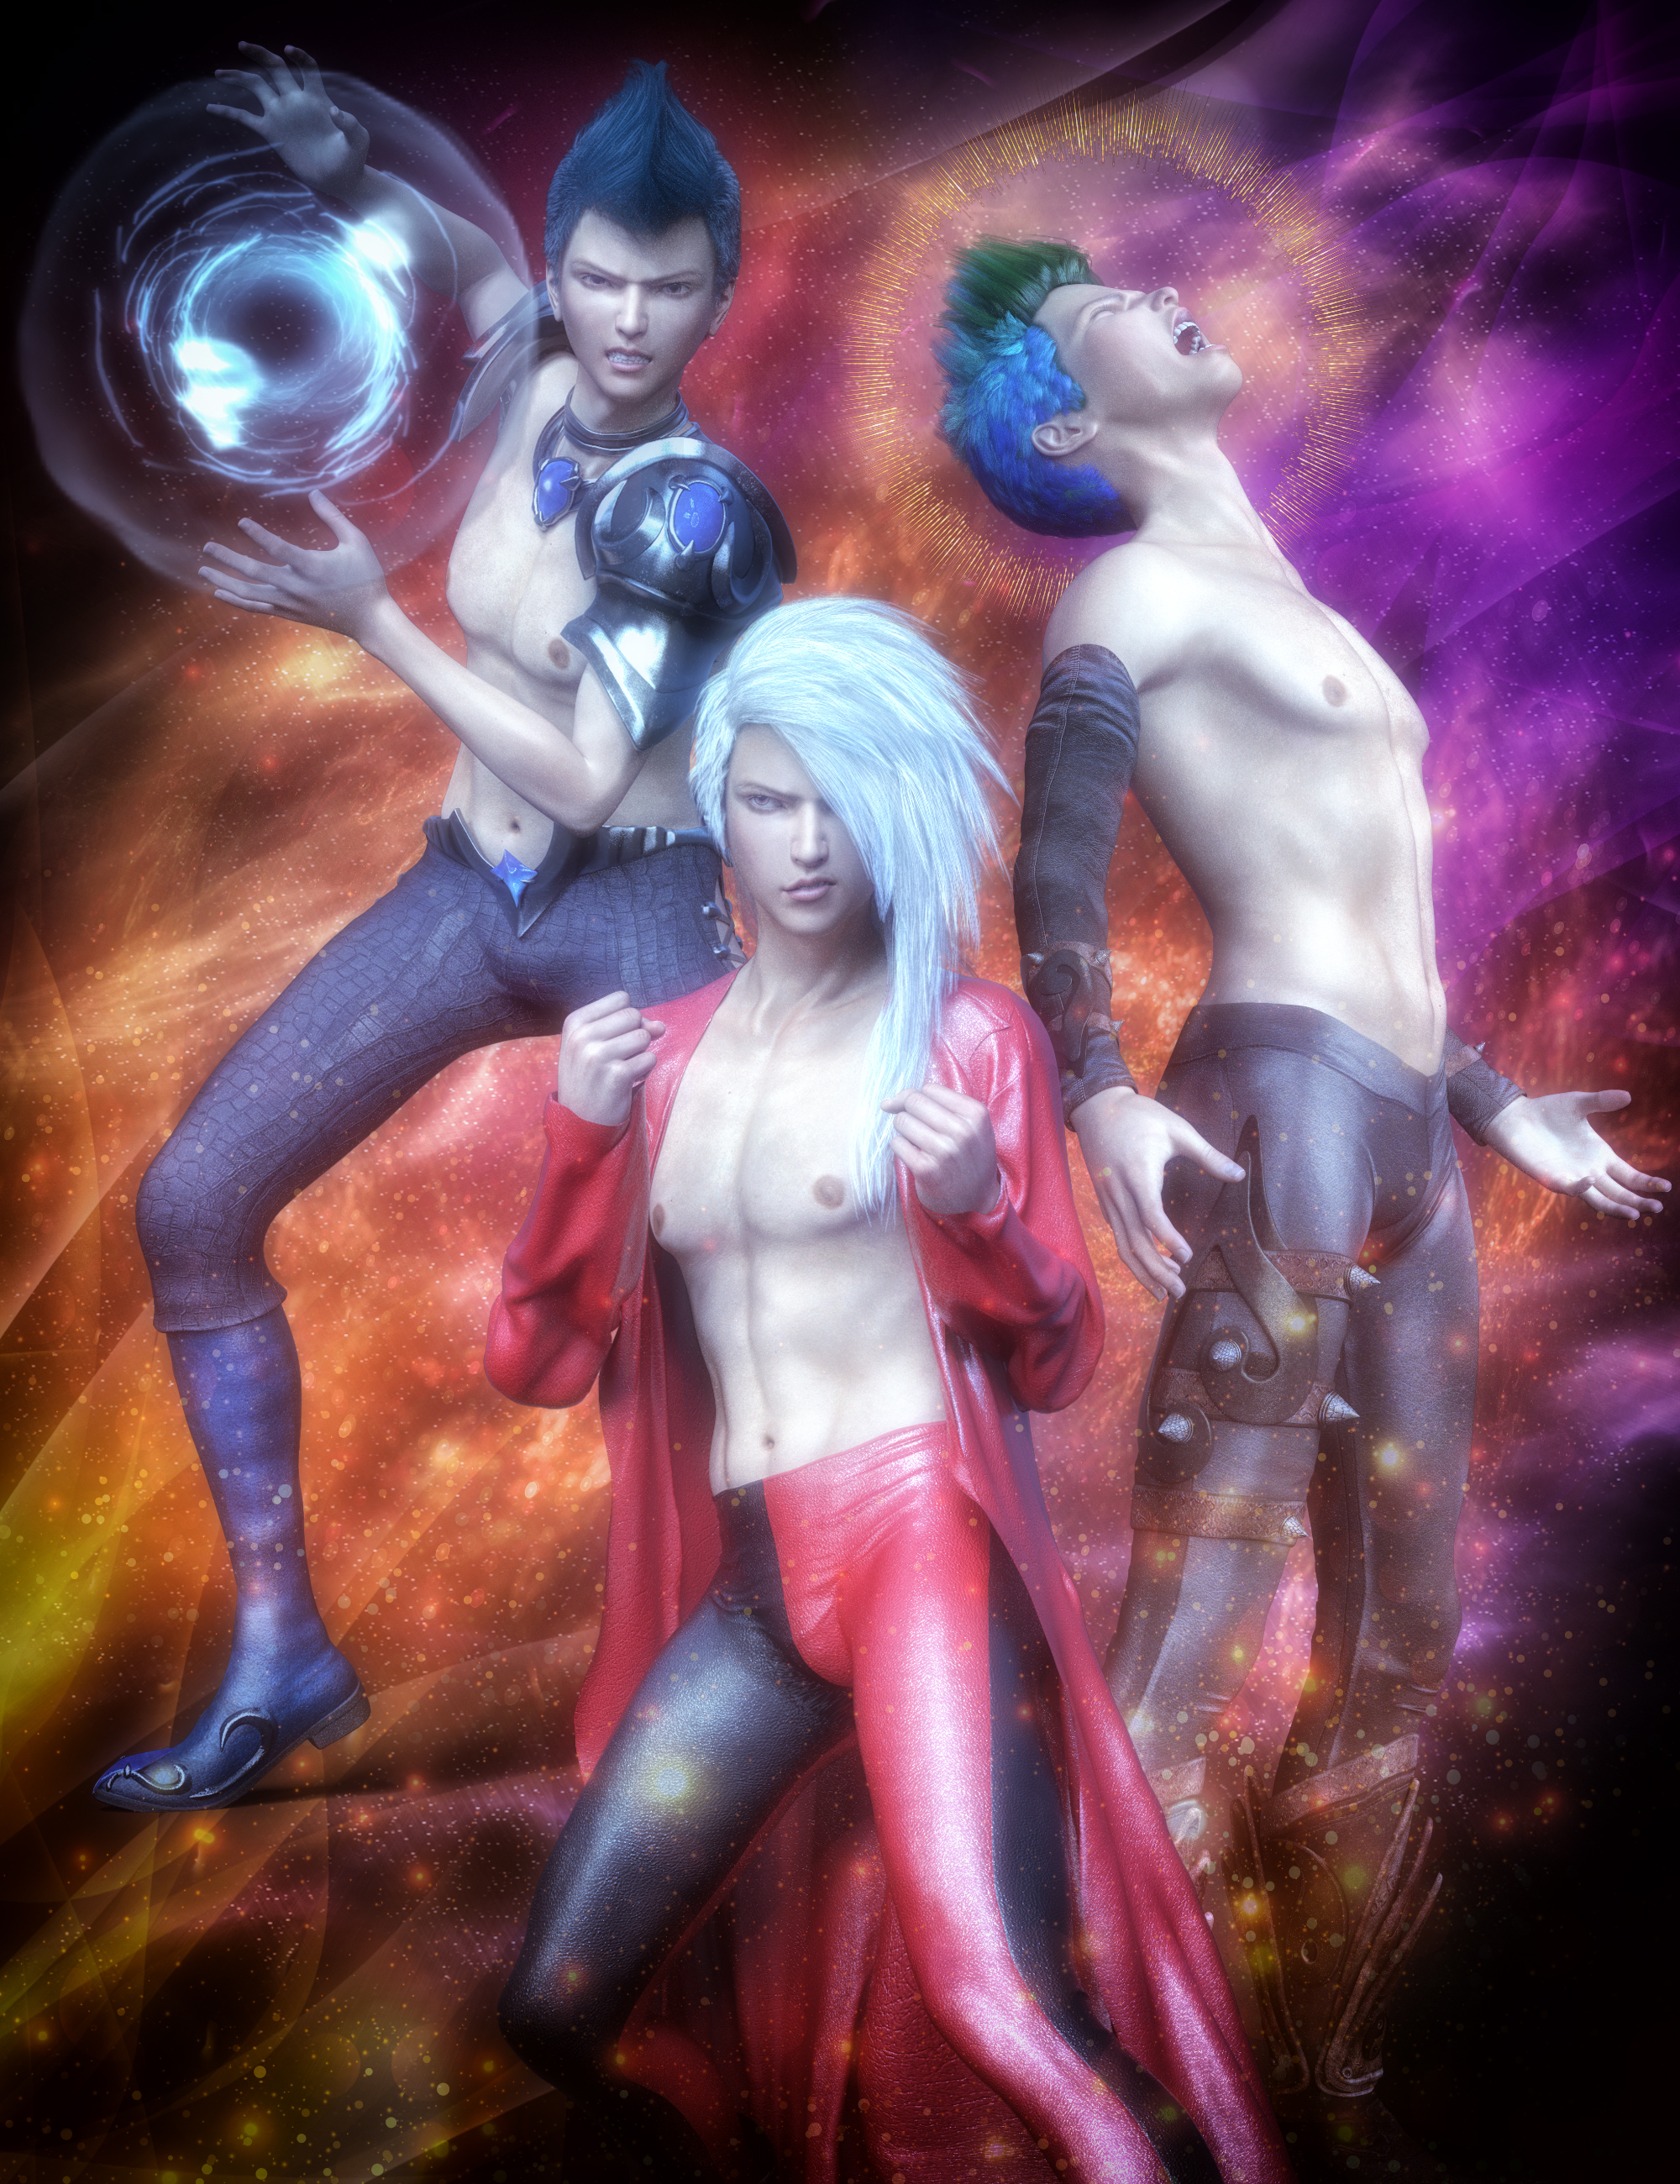 Anime Action Poses for Yuzuru 8 and Genesis 8 Males by: Skyewolf, 3D Models by Daz 3D